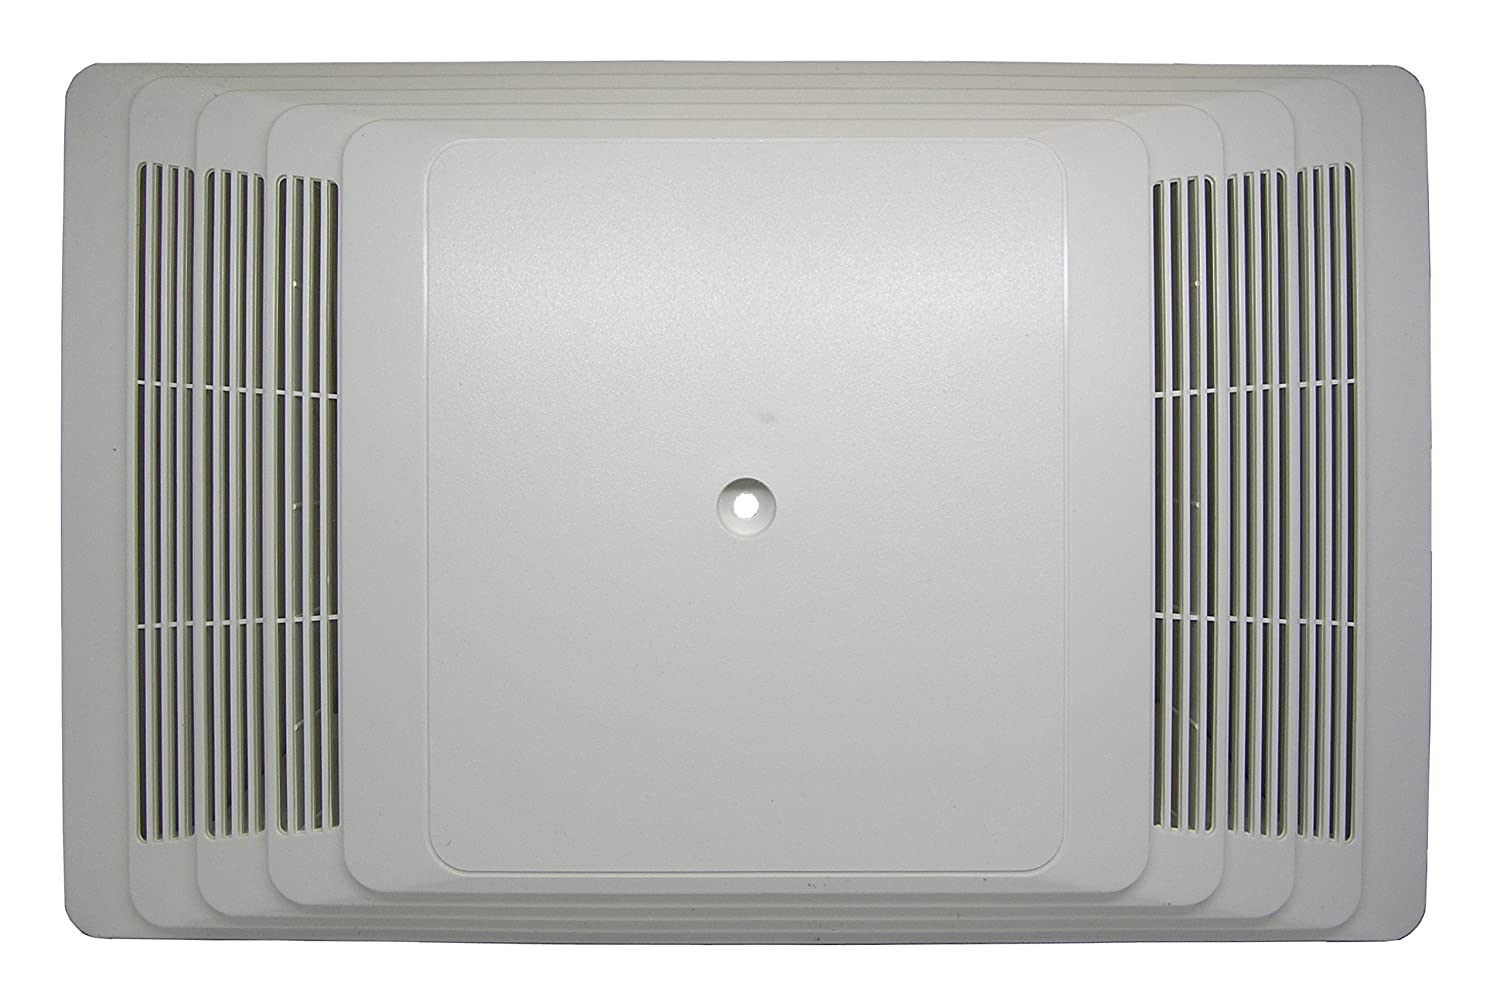 Broan S97013581 Bathroom Fan Cover Grille Assembly Kit, White